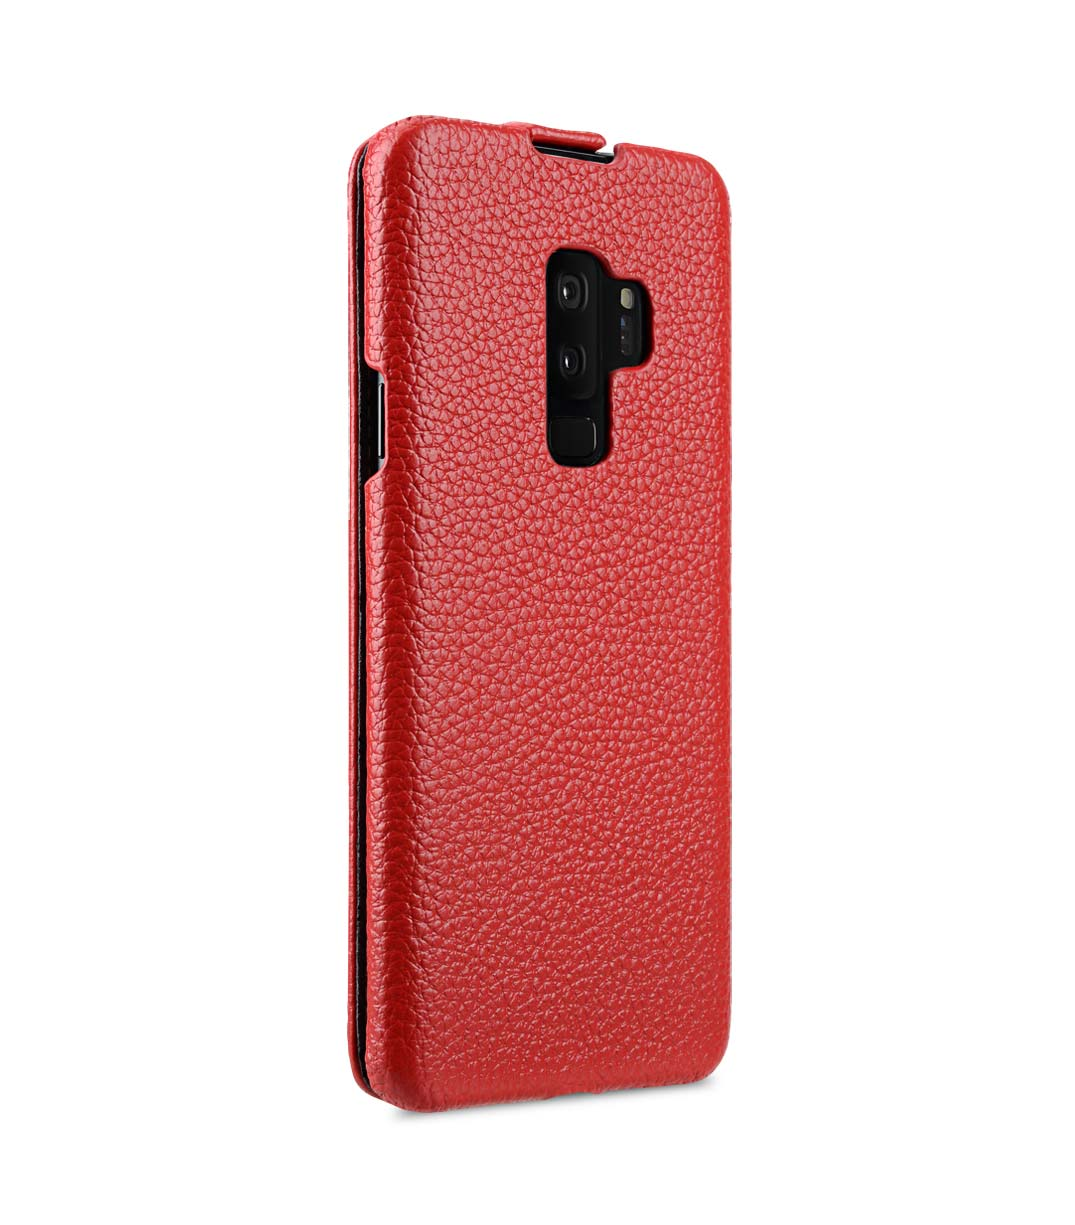 Melkco Premium Leather Case for Samsung Galaxy S9 Plus - Jacka Type (Red LC)